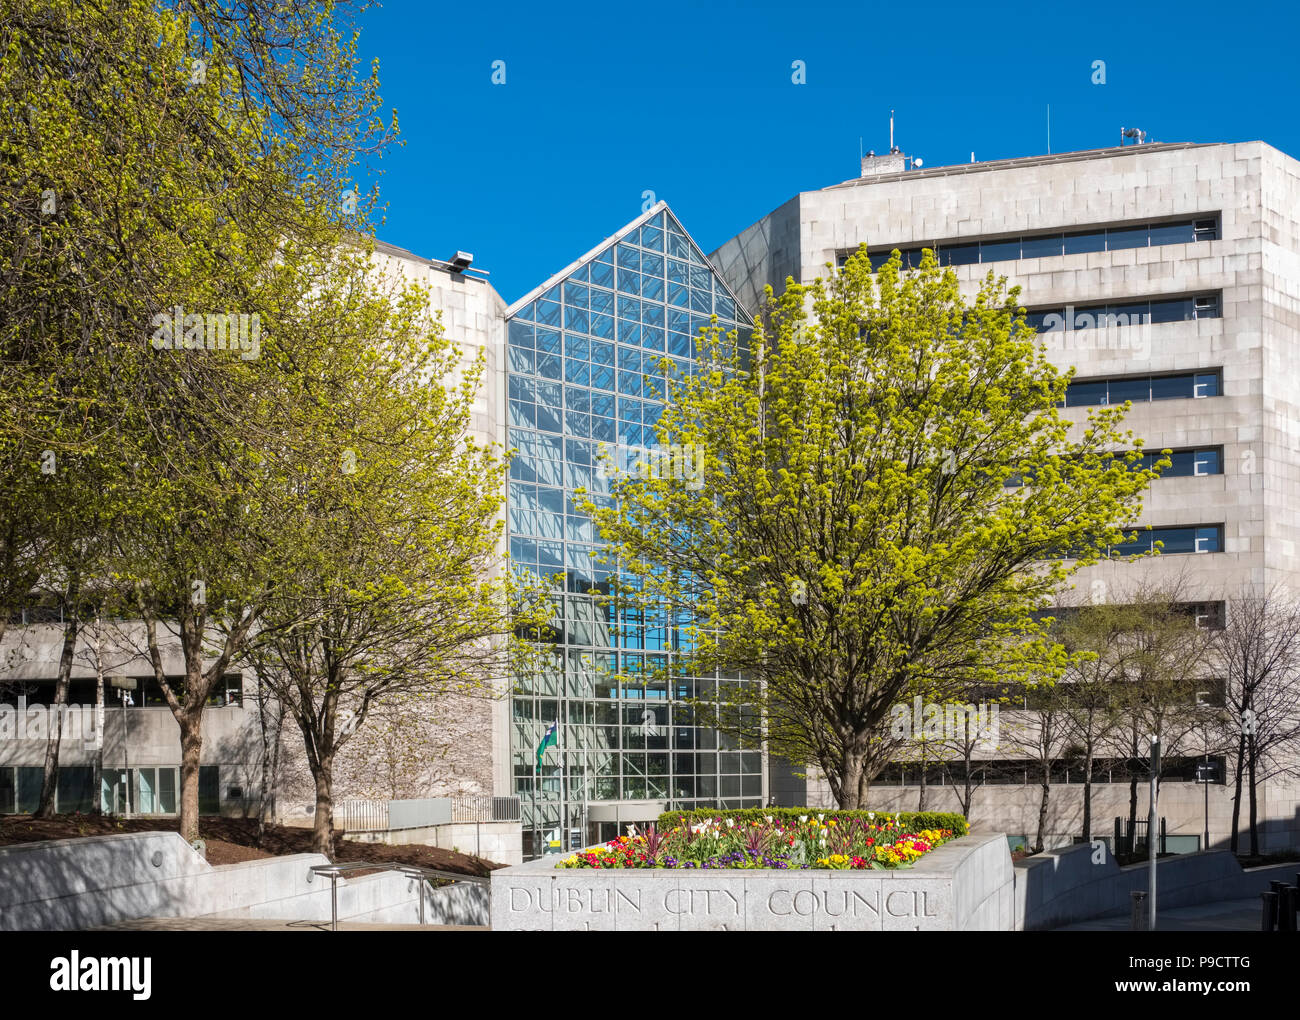 Dublin City Council offices, Dublin, Ireland, Europe - Stock Image